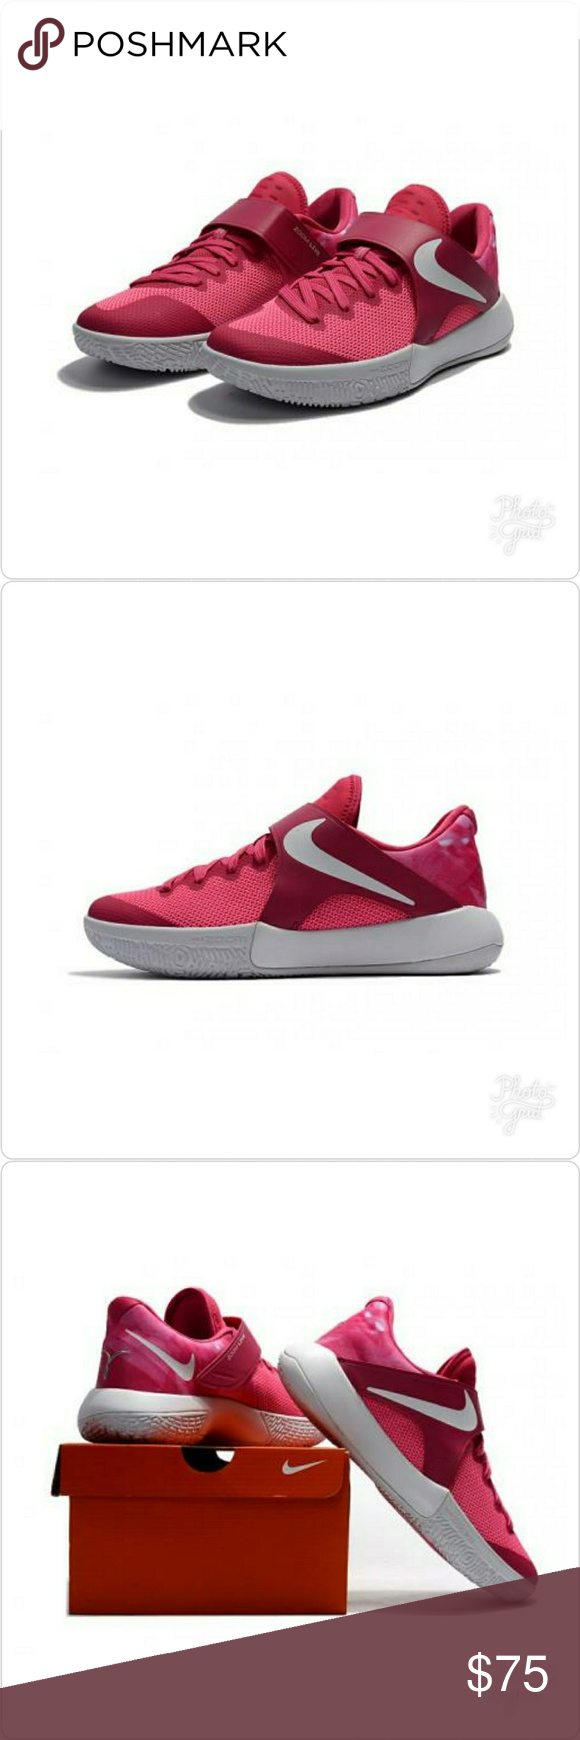 cf632720ce1b NIKE ZOOM LIVE NIKE ZOOM LIVE 2017 EP vivid pink white men basketball shoes Kay  yow Breast cancer Men US 9.5  UK 8.5  Euro 43  27.5cm Nike Shoes Sneakers